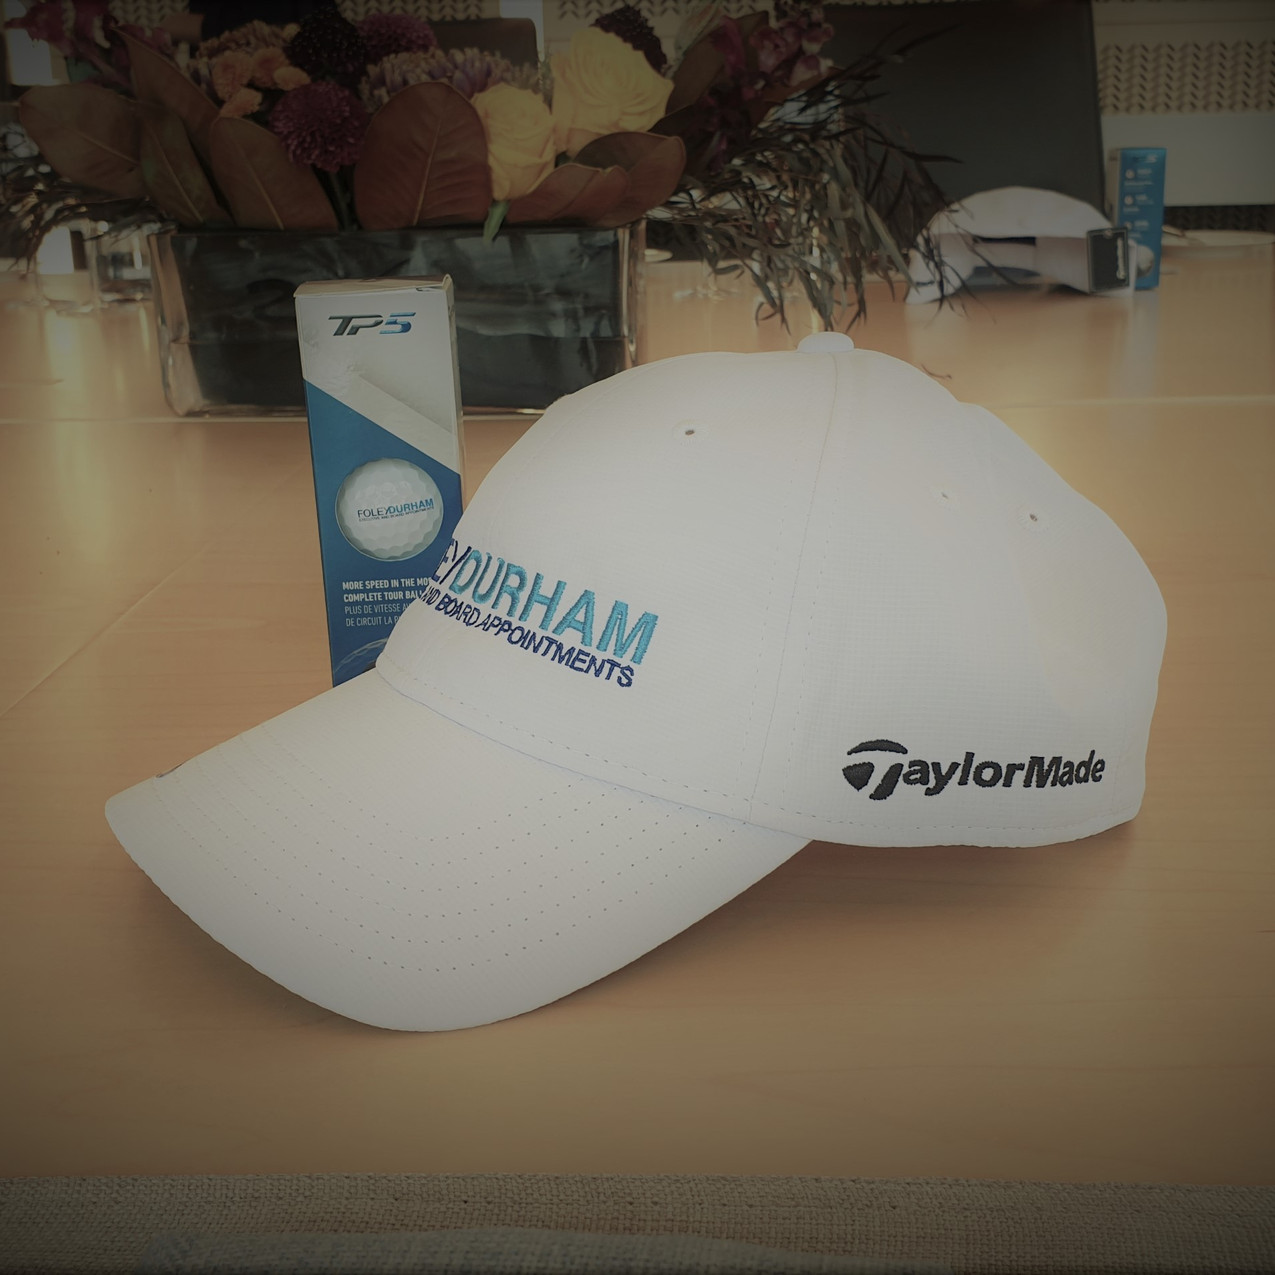 190913 KPMG Lunch - TaylorMade kit